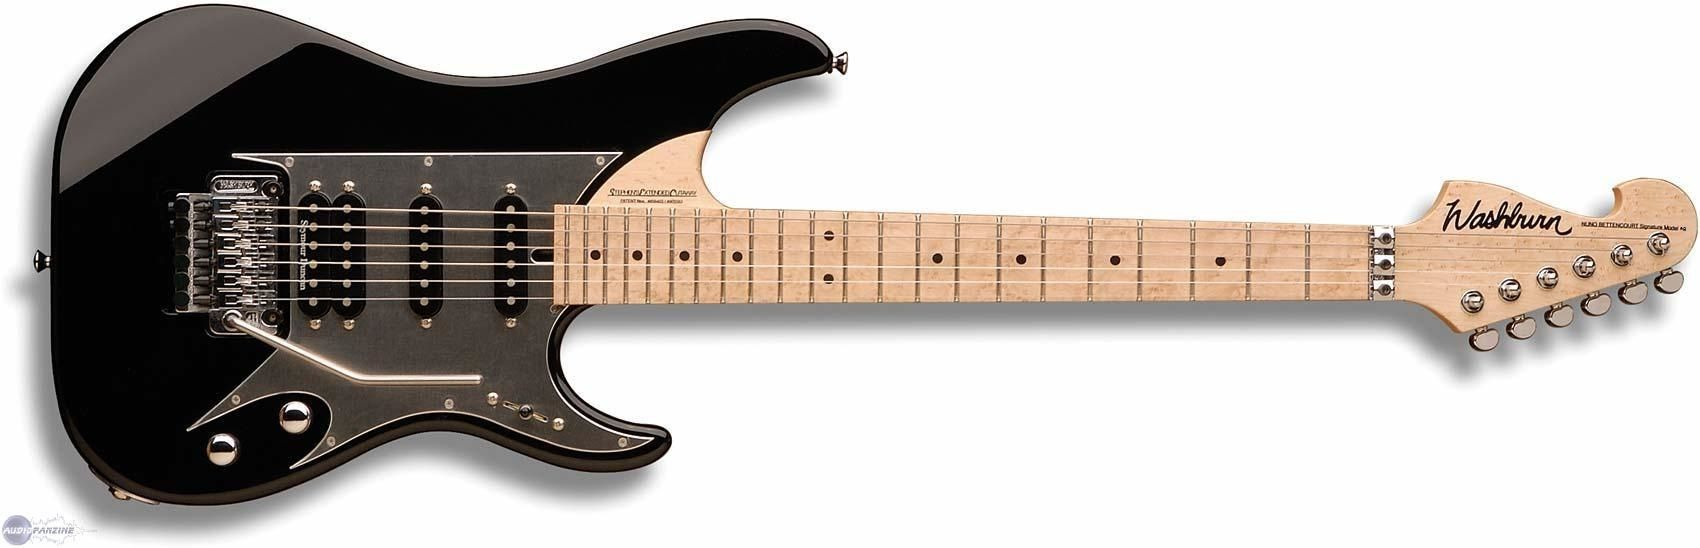 The Washburn N6 came out in 2005. Nuno an accomplished guitar player was looking for more diversity in his sound so he and Washburn set out to make a stratty version of the Nuno signature model.